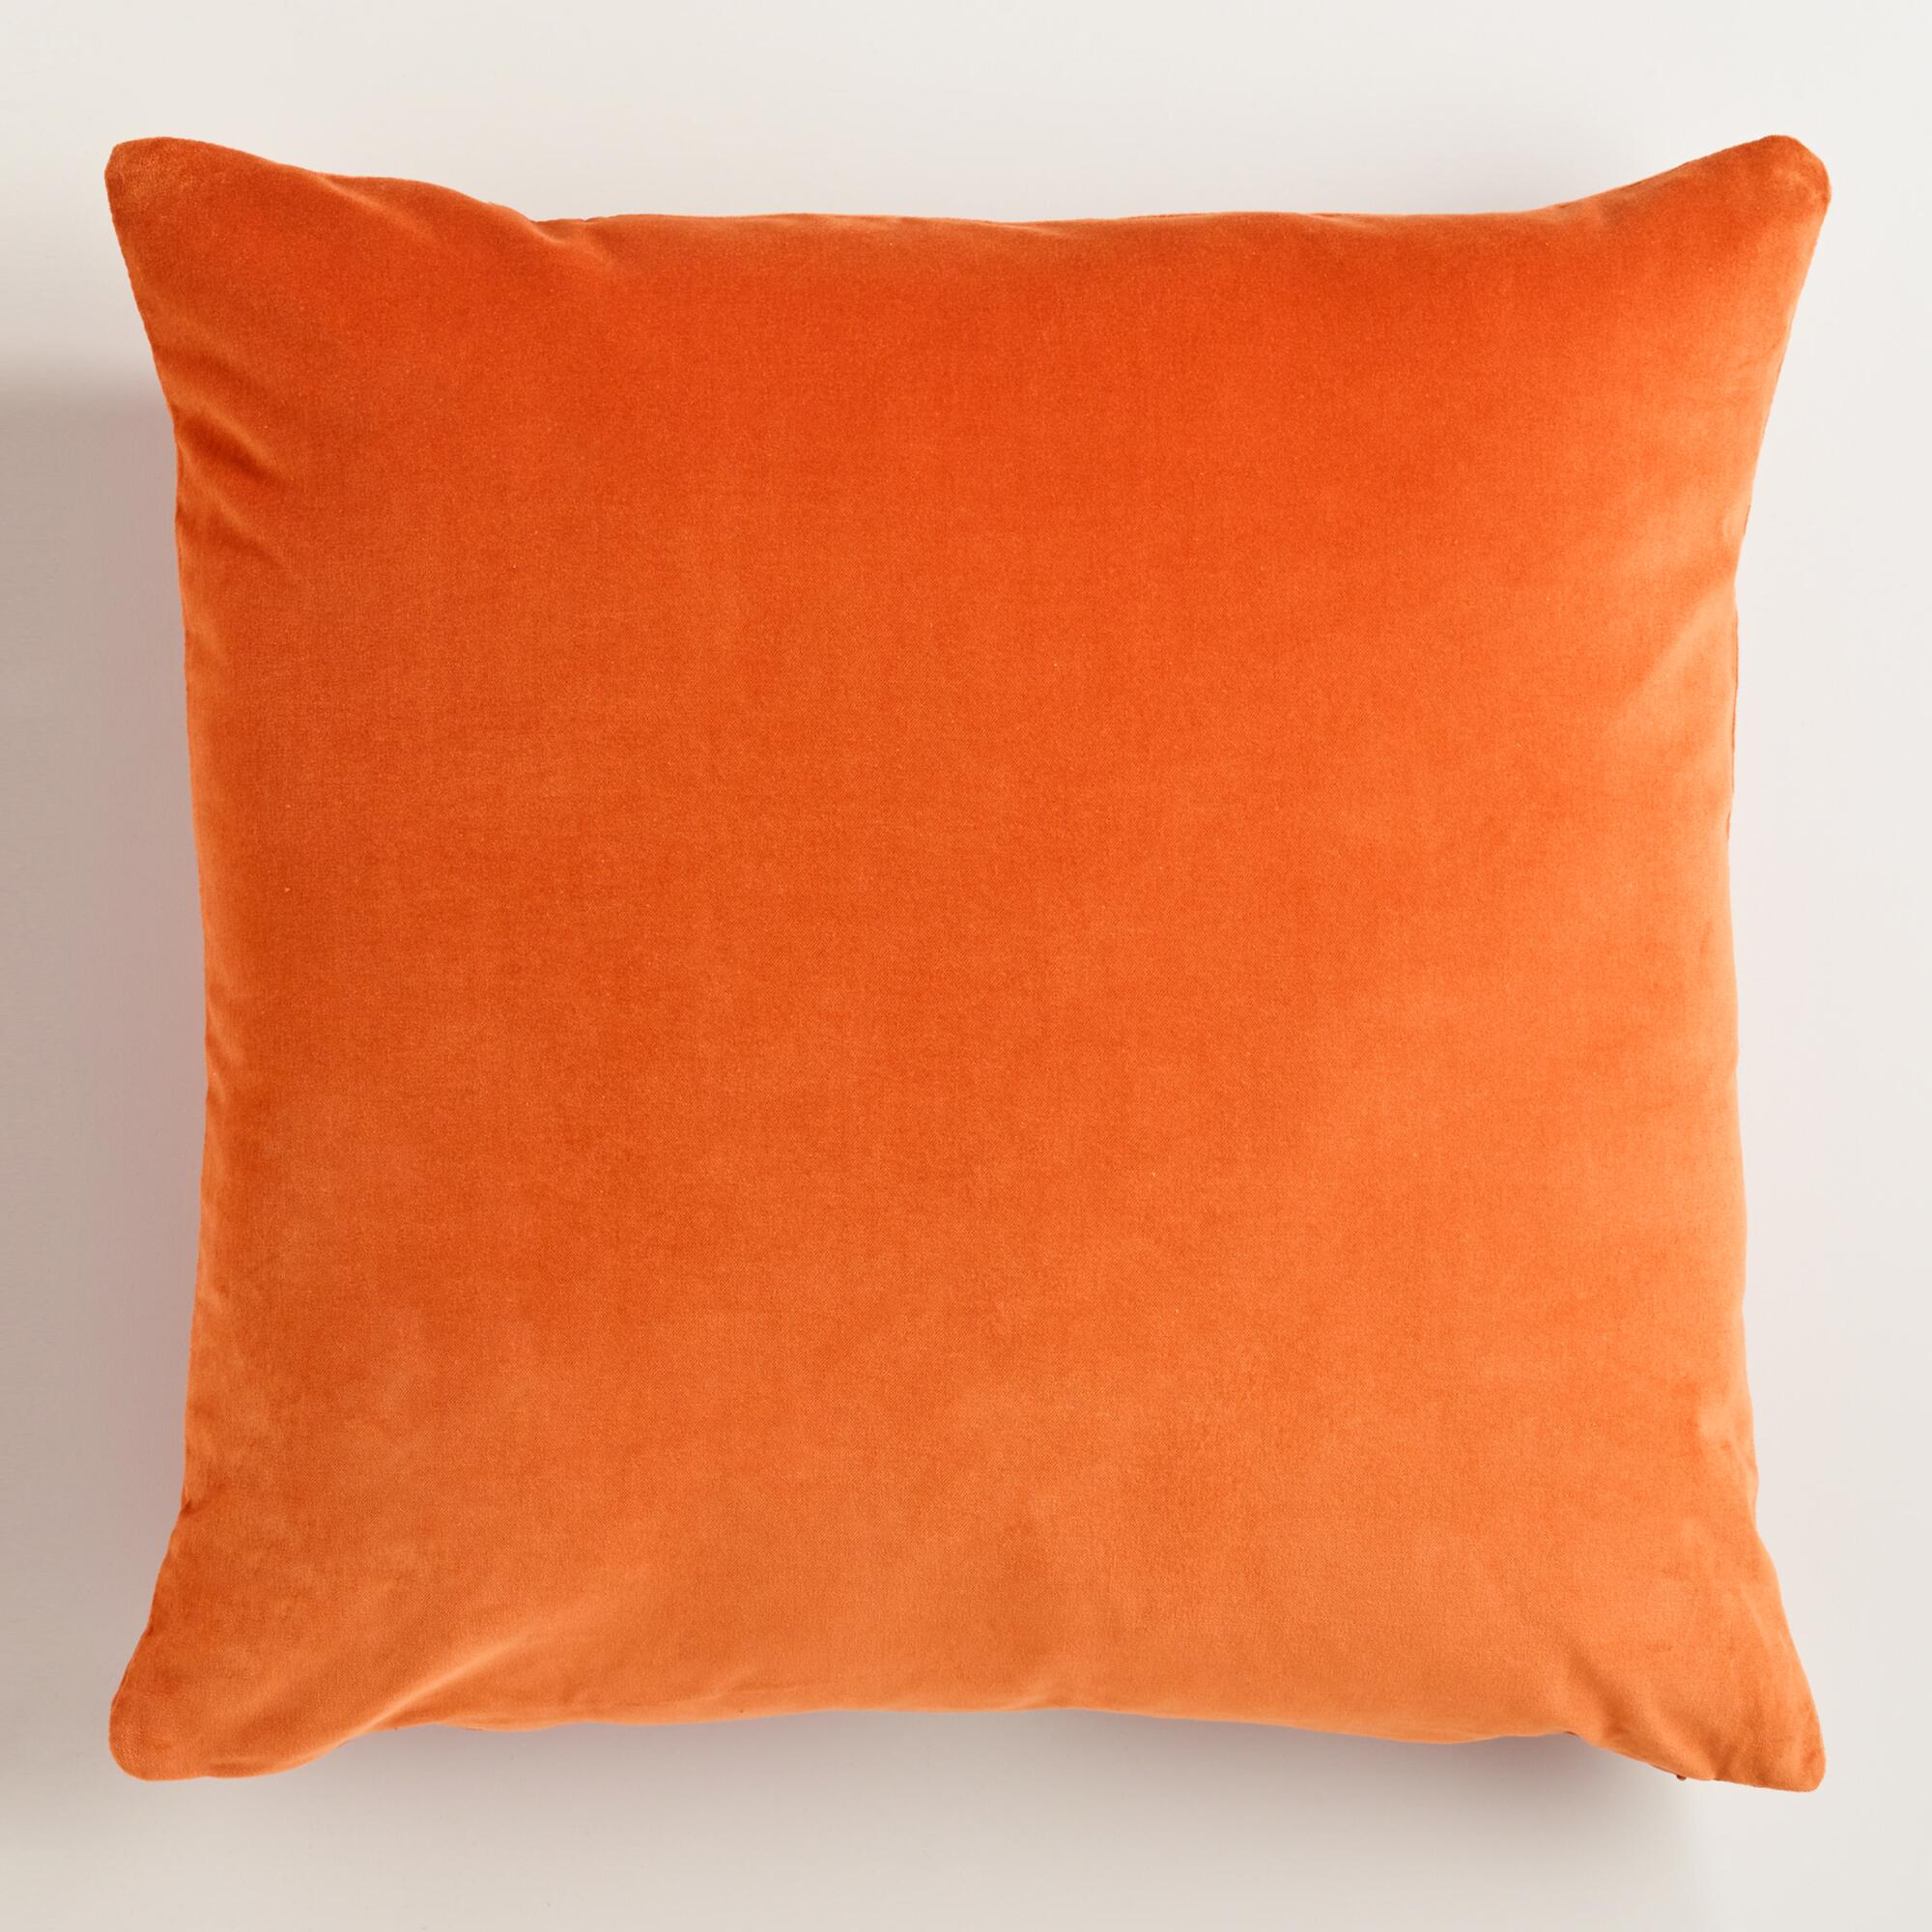 Orange Decorative Pillows Couch : Pillows Velvet Large - Interior Design Ideas Small Space Gray